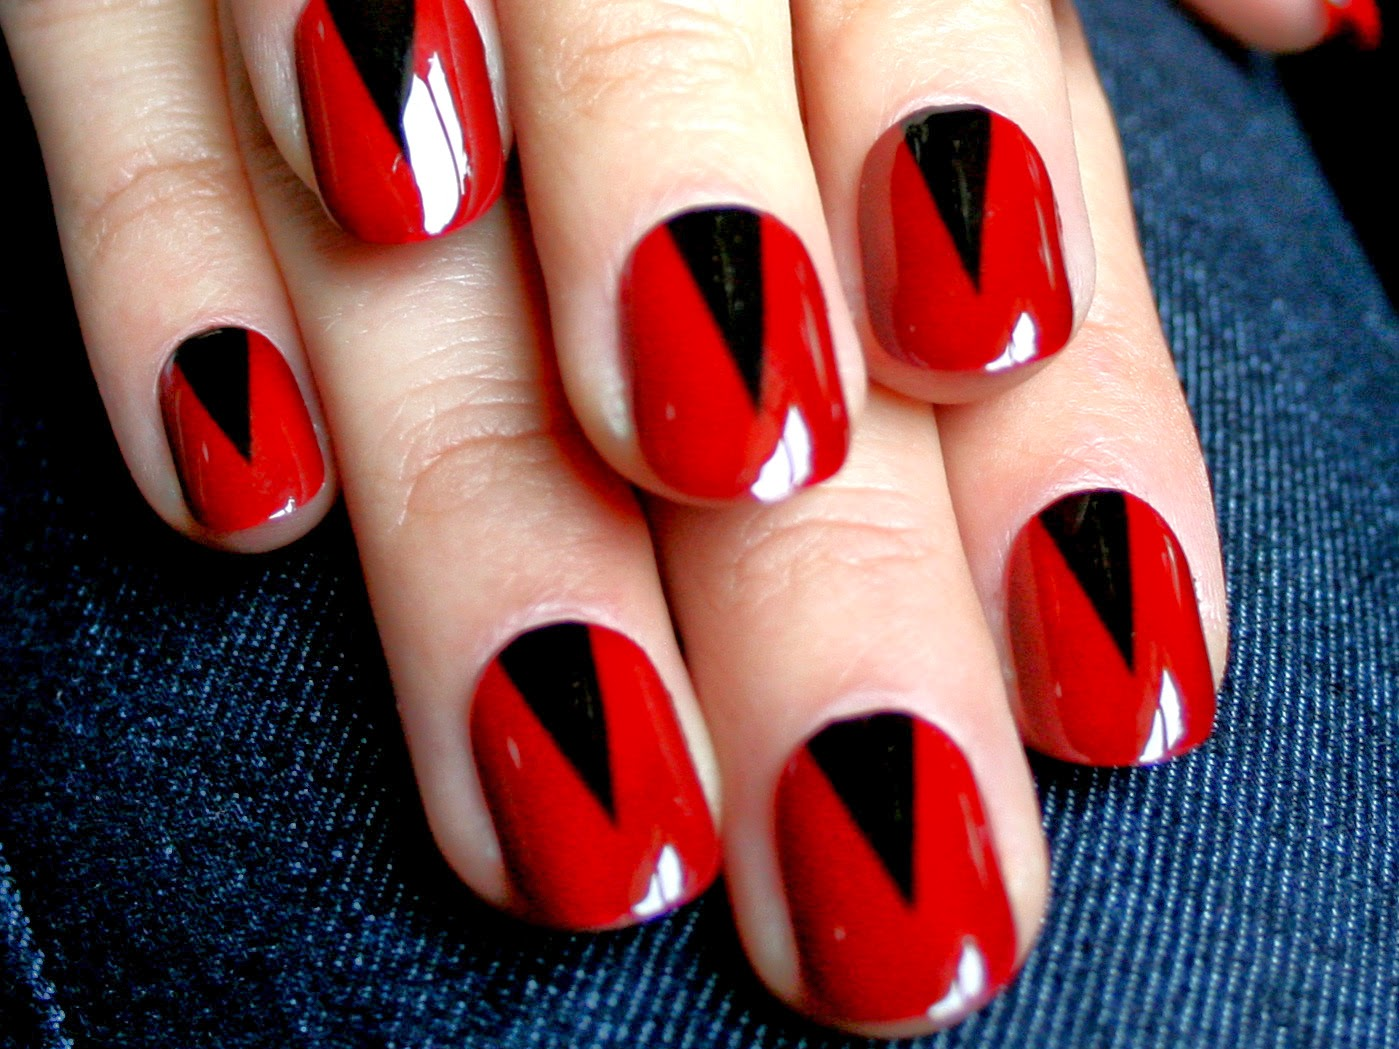 10 amazing red nail art designhttpnails sidespot i also wish that you get very good nail art so youve got 10 red nail art design i hope youll come to love red nail art design prinsesfo Choice Image